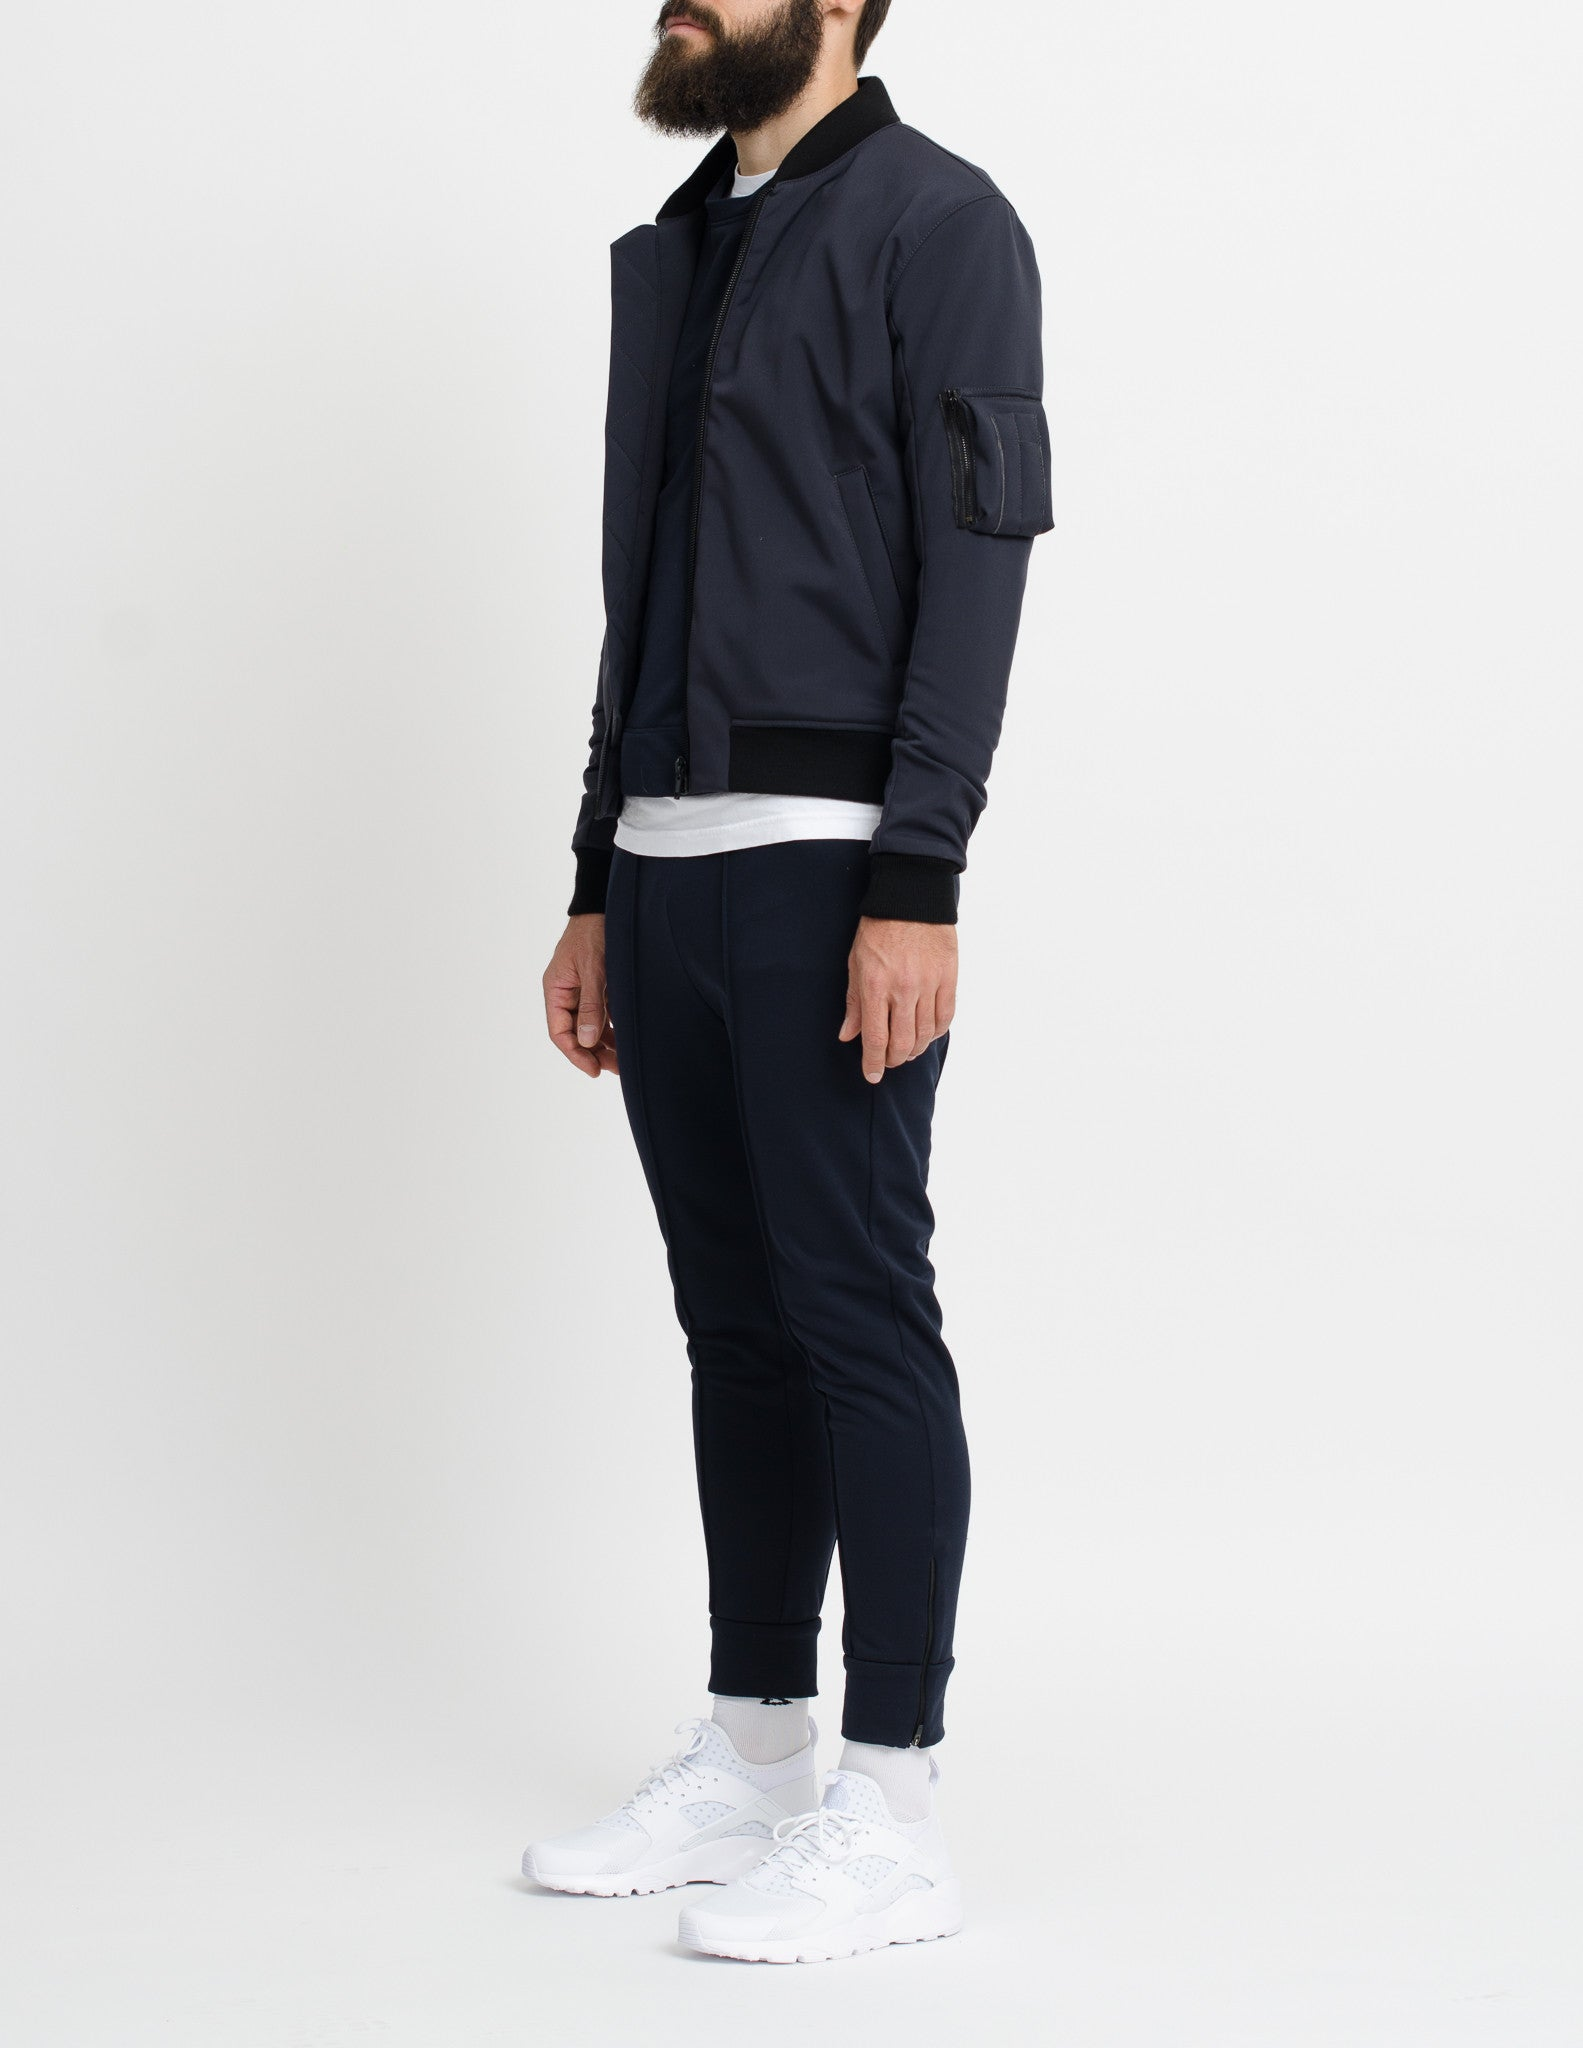 Carbon Bomber Jacket ENVE LTD Edition